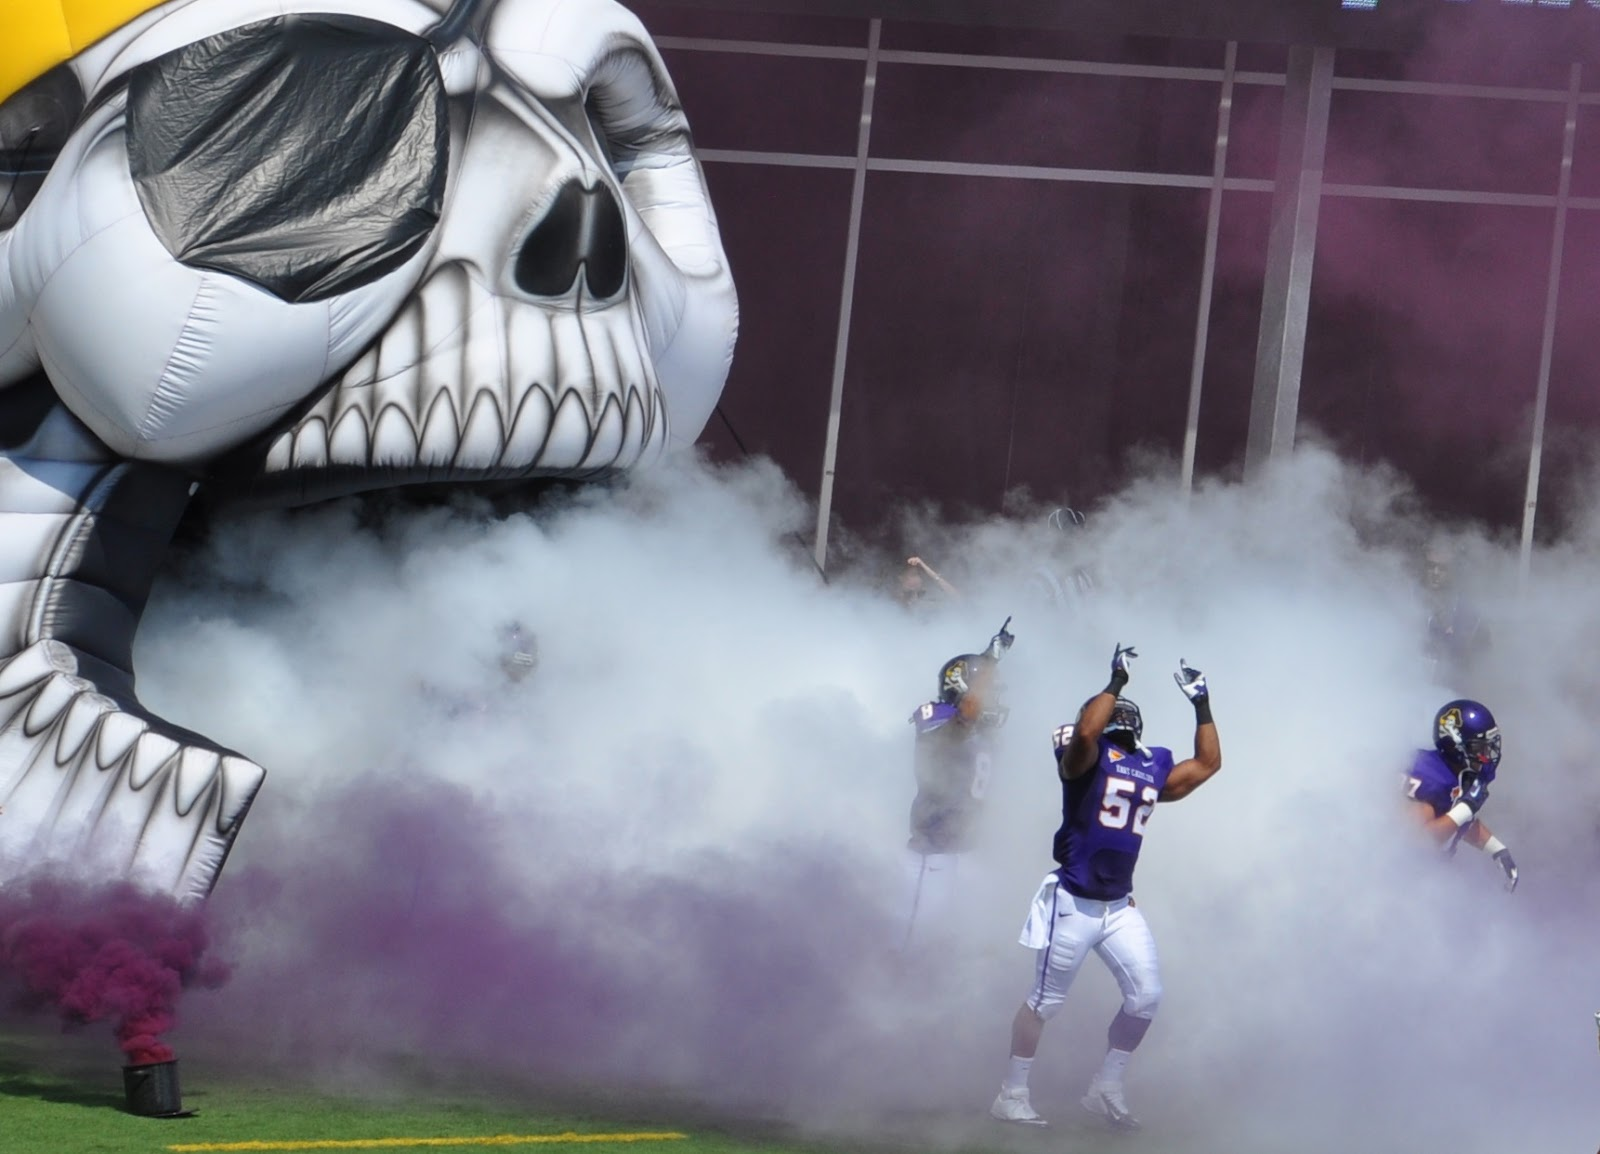 hd wallpapers Ecu Football Wallpaper 1600x1154